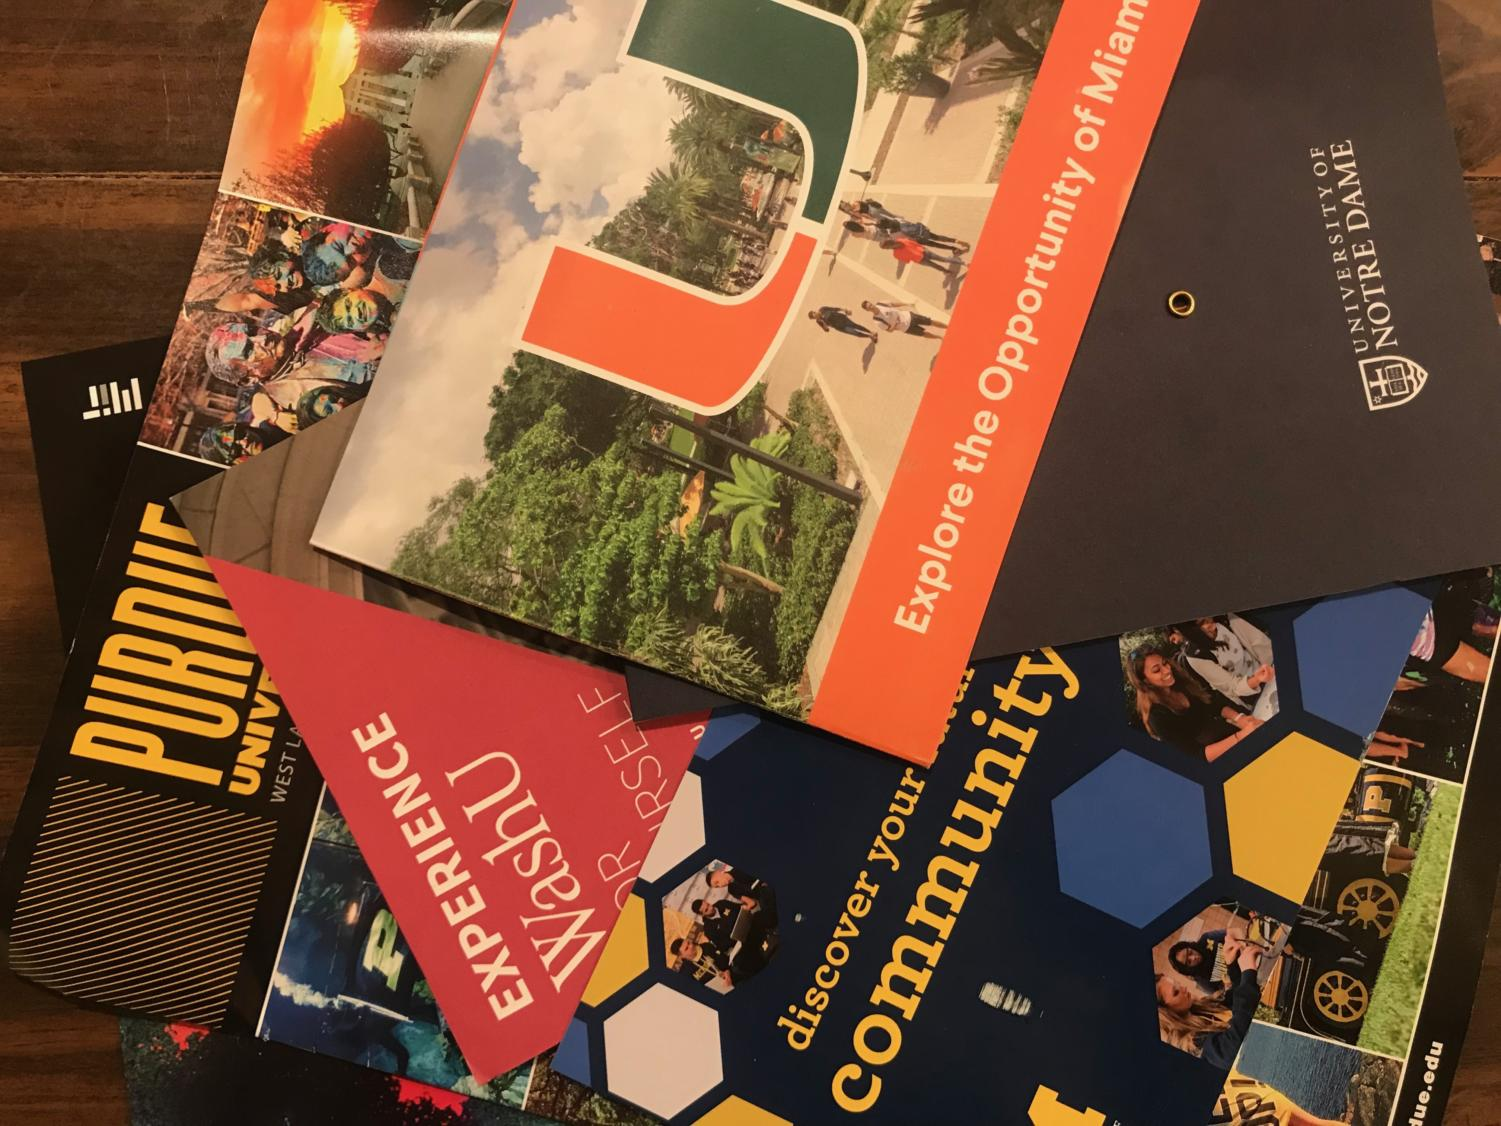 Pictured above is a pile of college mail. The climate surrounding college admissions has changed substantially over the past thirty years.